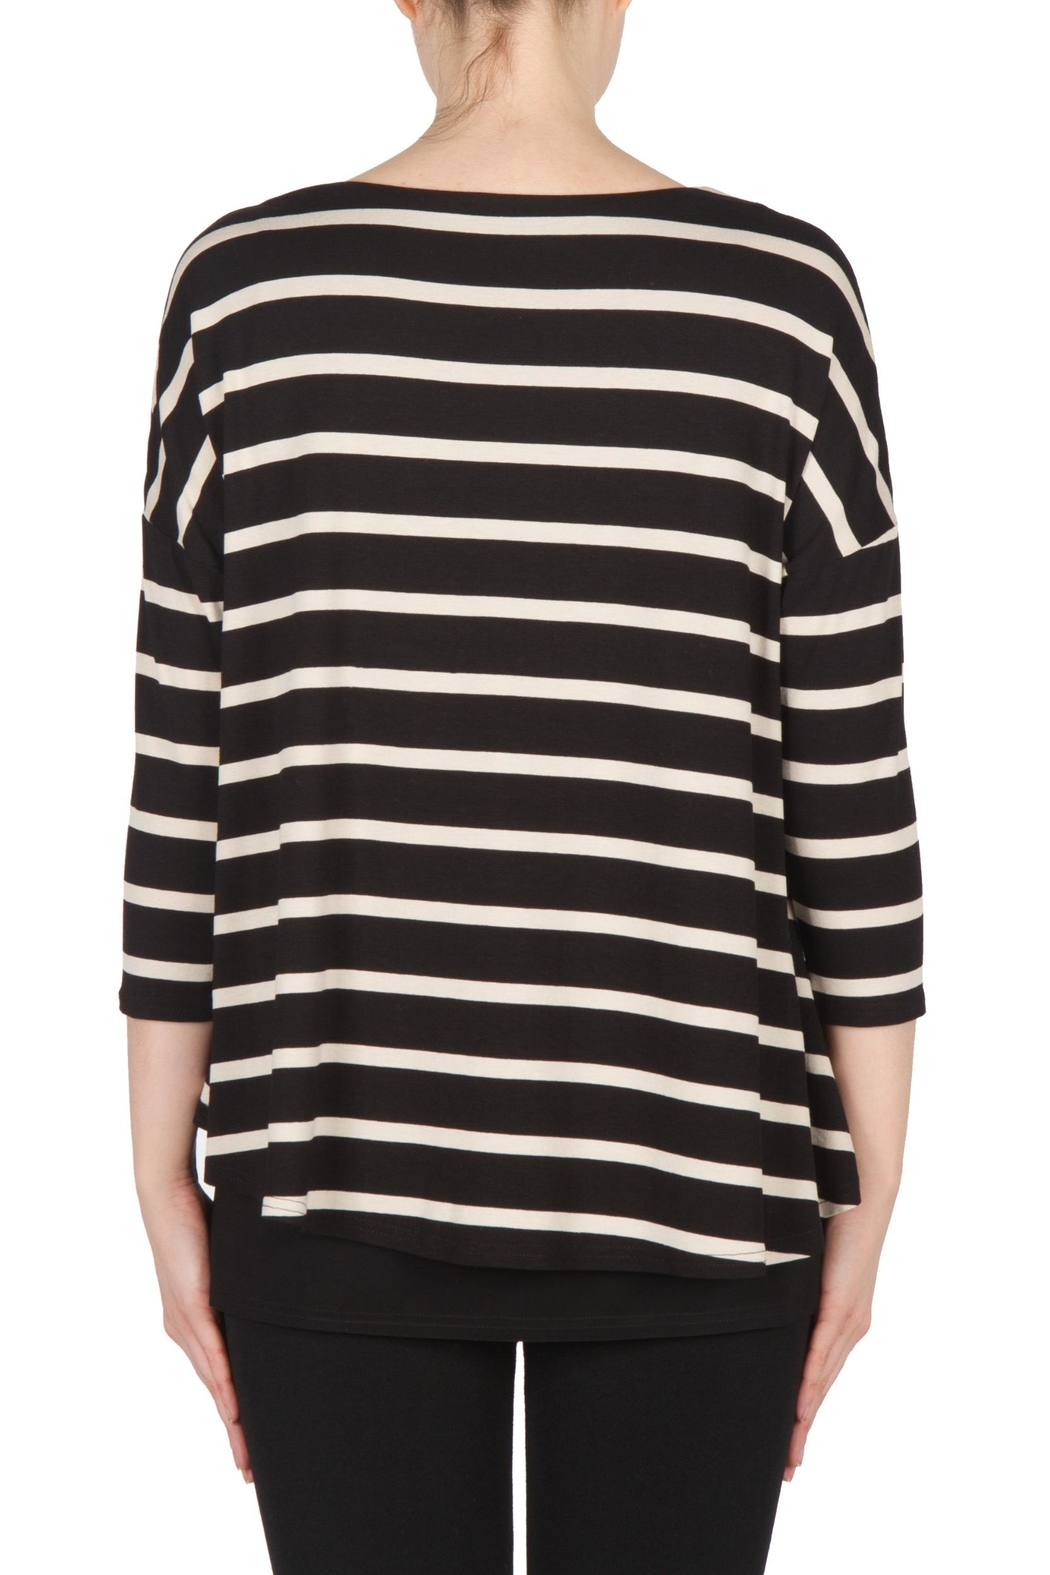 Joseph Ribkoff Striped Tunic Top - Side Cropped Image